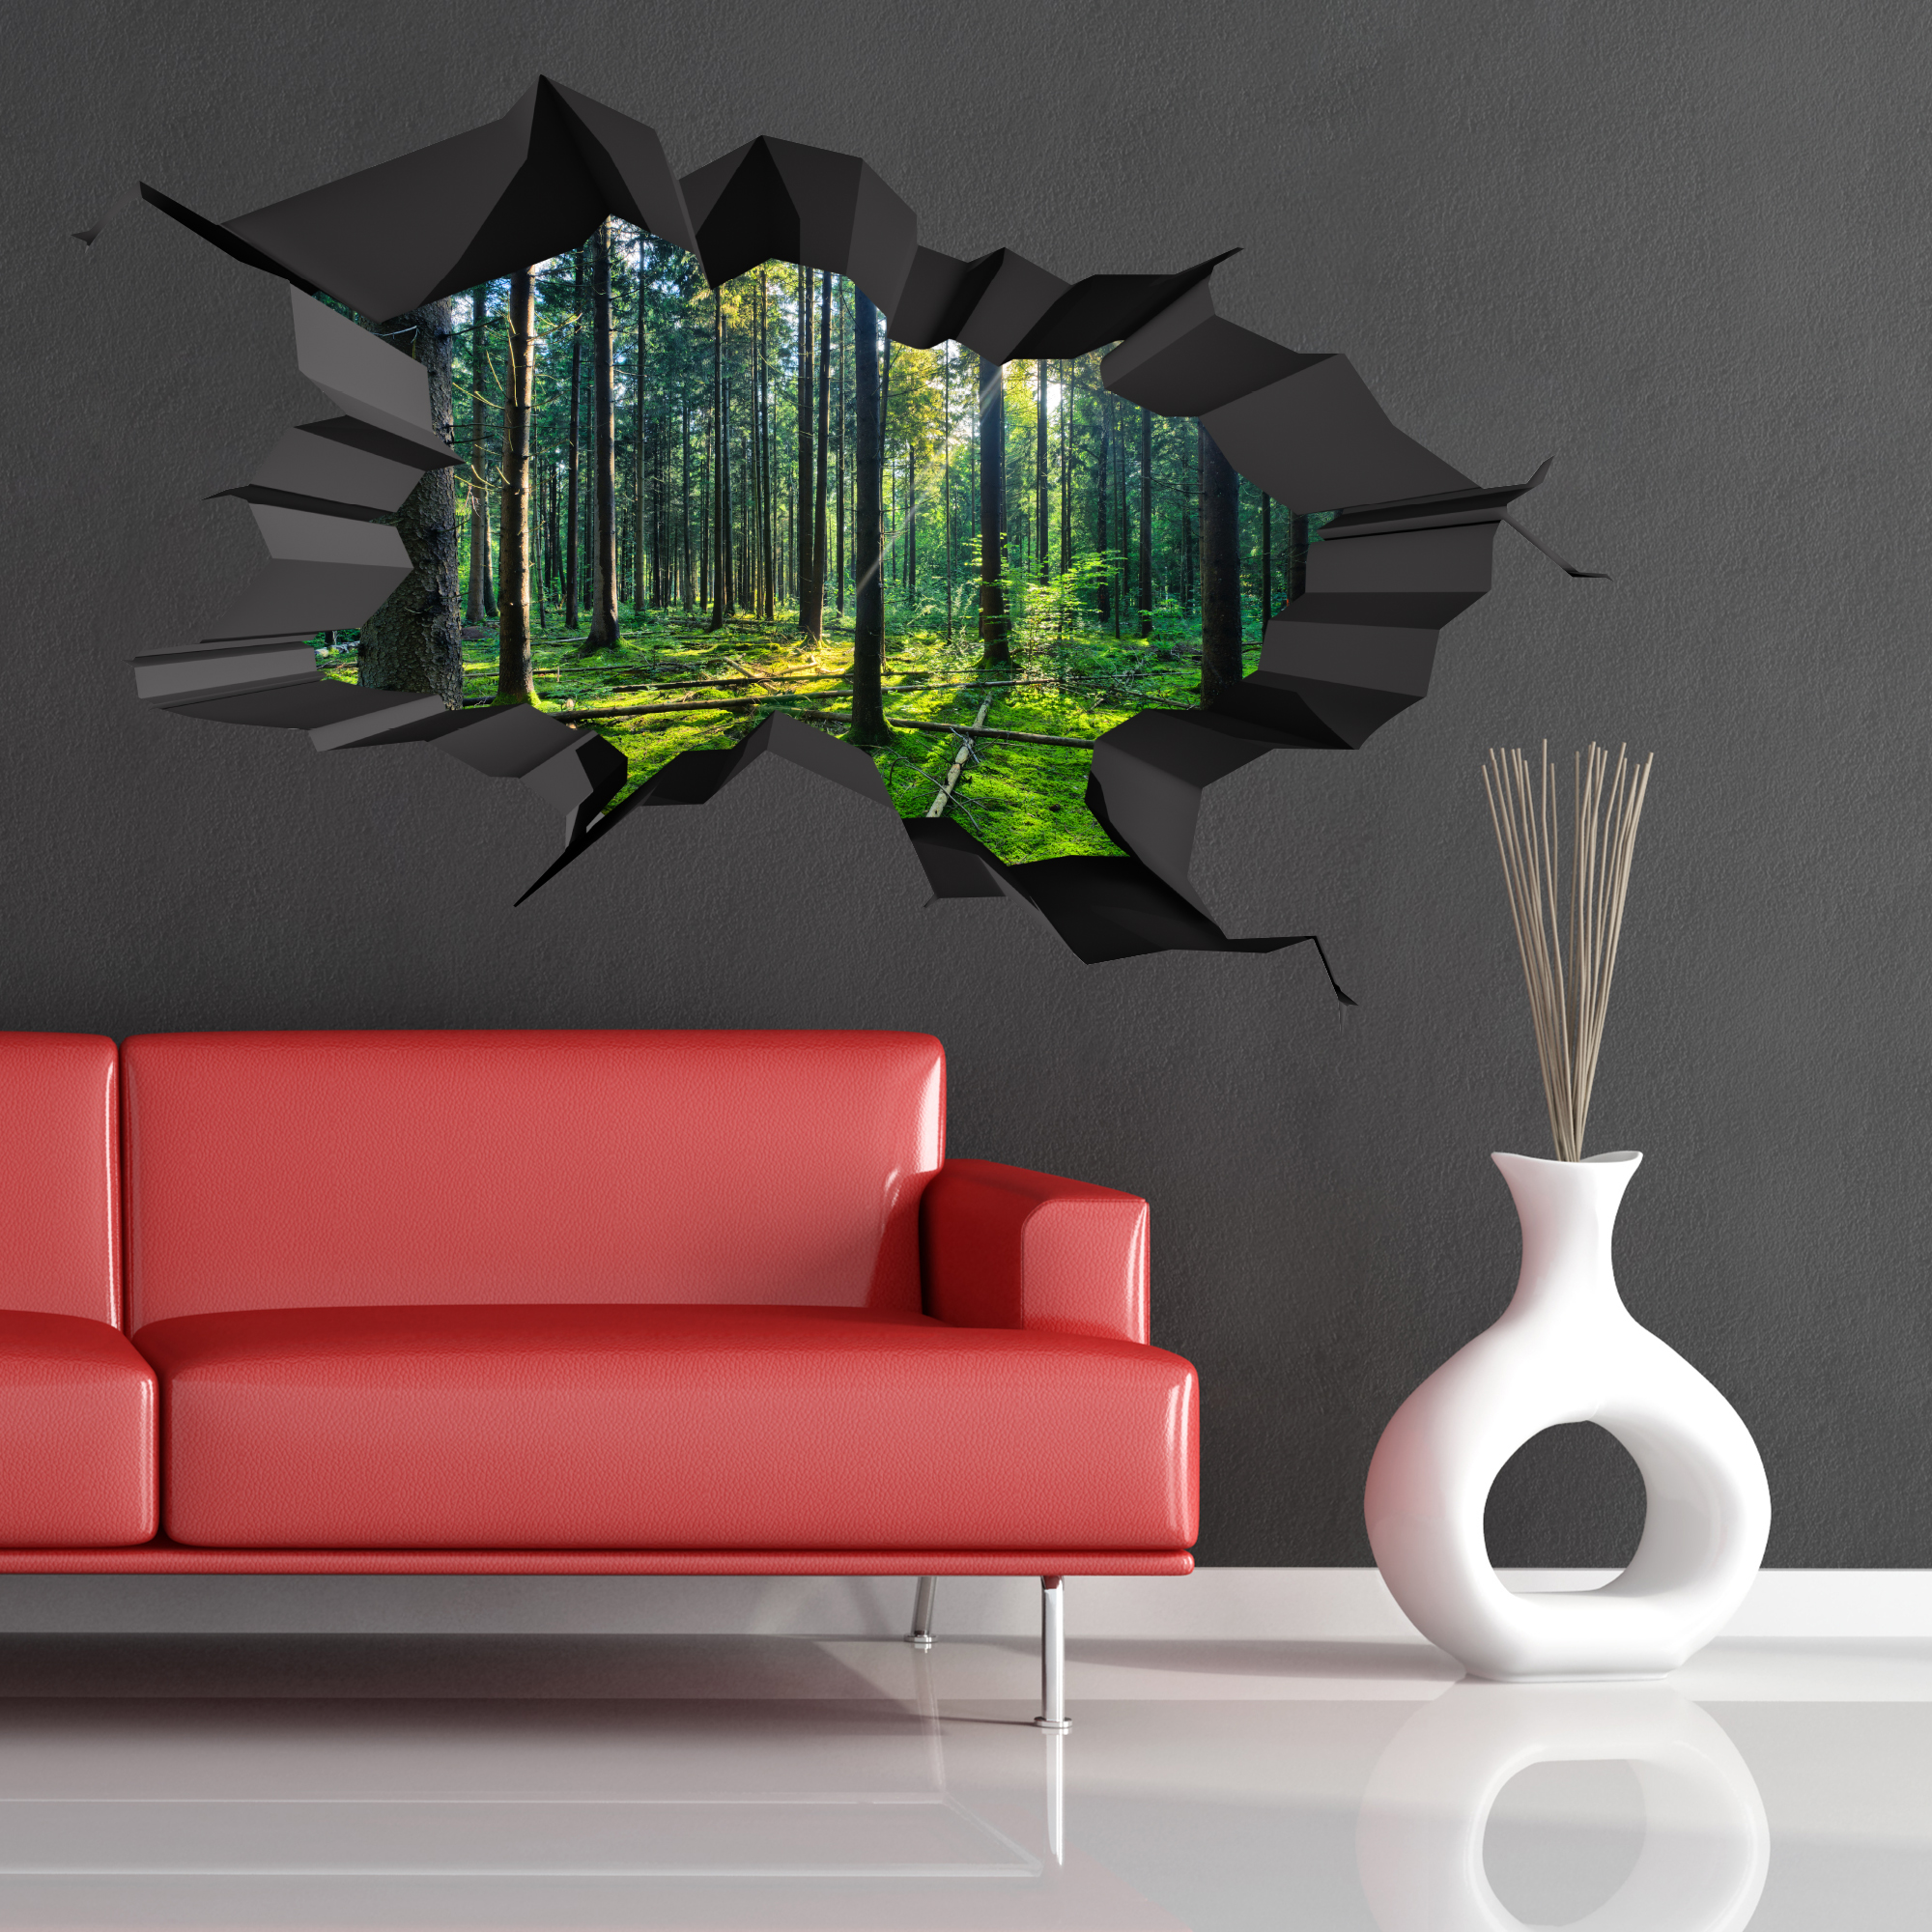 Wall Art Decals For Living Room: FULL COLOUR WOODS FOREST TREES JUNGLE CRACKED 3D WALL ART